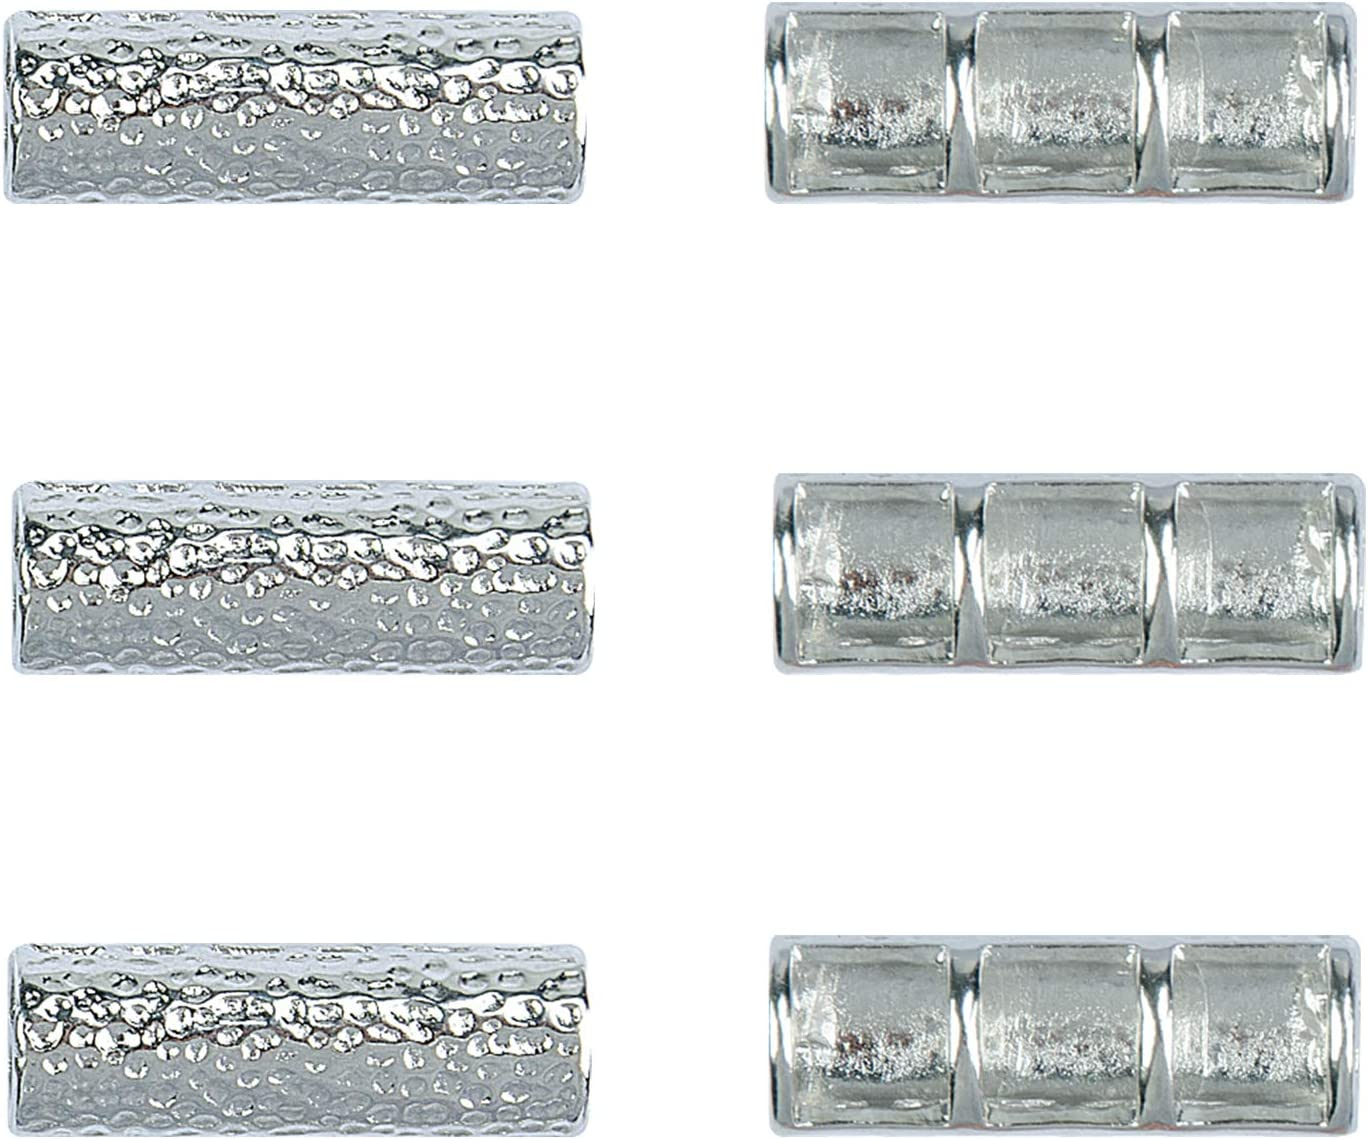 OMECKY Bead Connectors for Watch Band Making, Silver (3 Pack)